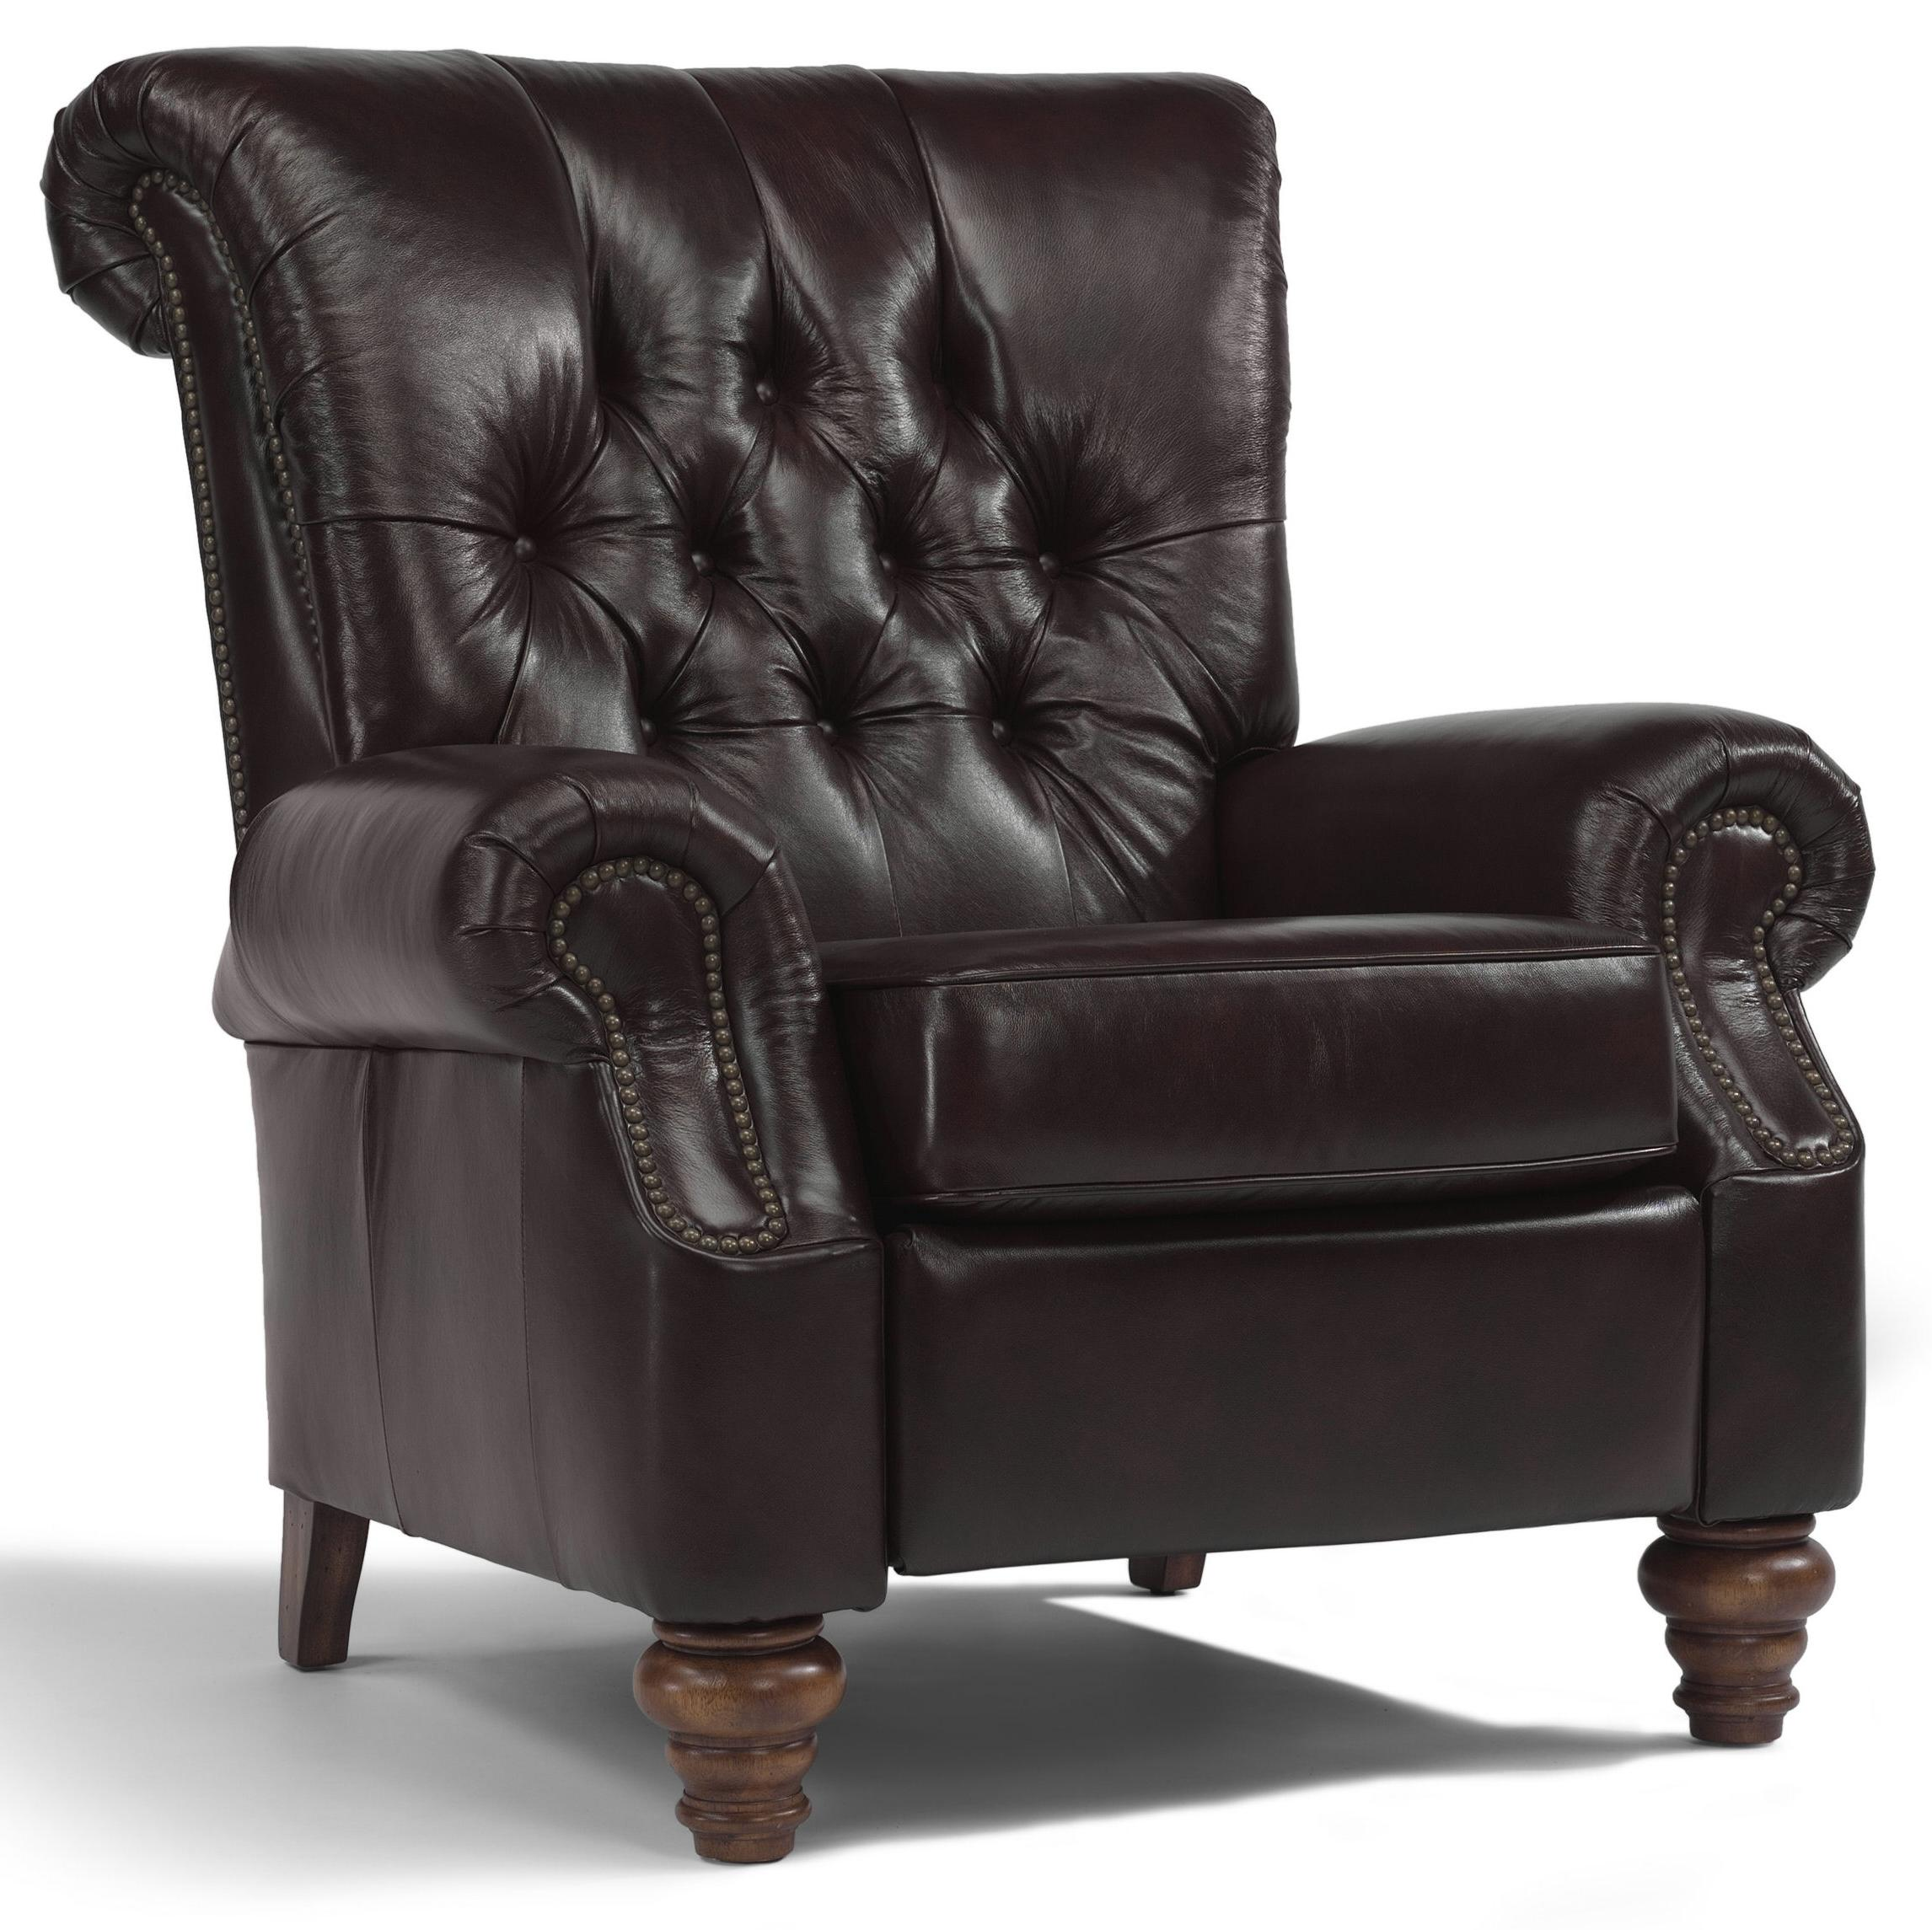 Equestrian High Leg Recliner